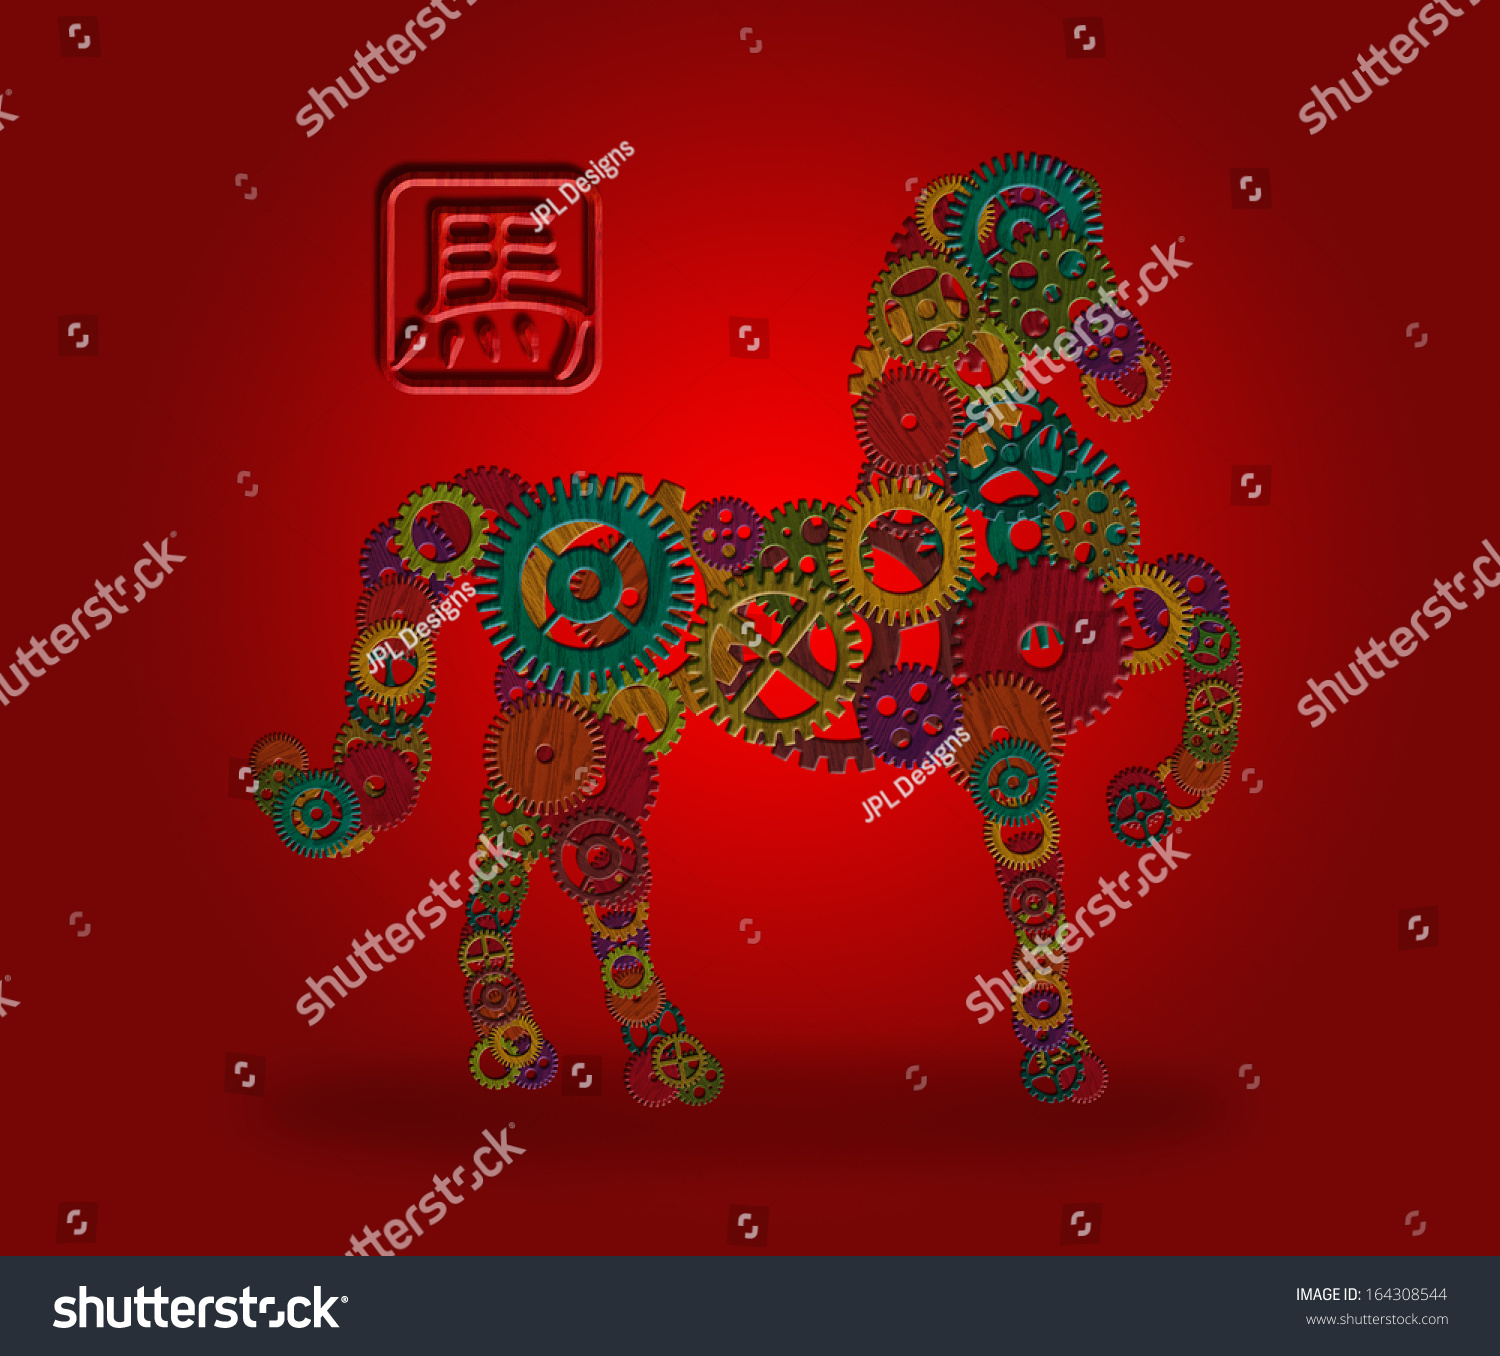 2014 chinese lunar new year horse stock illustration 164308544 2014 chinese lunar new year of the horse wood gear element forward pose silhouette with horse buycottarizona